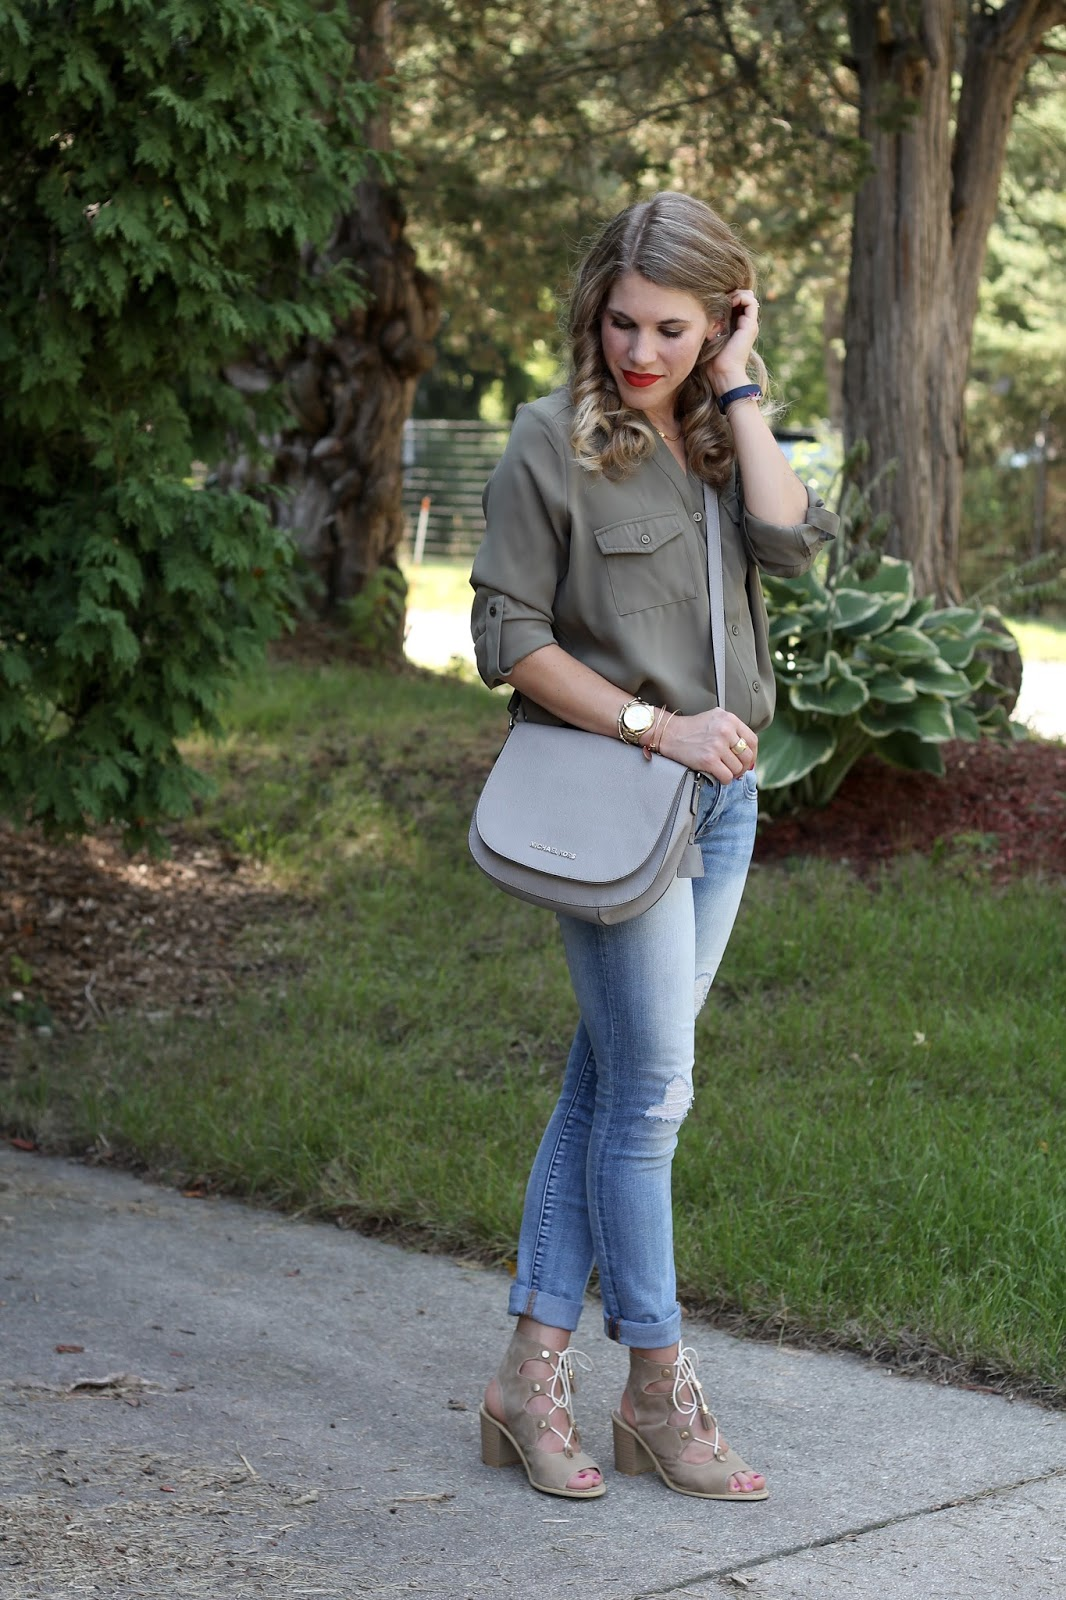 Tobi olive button up top, distressed jeans, grey Michael Kors saddle bag, lace up sandals